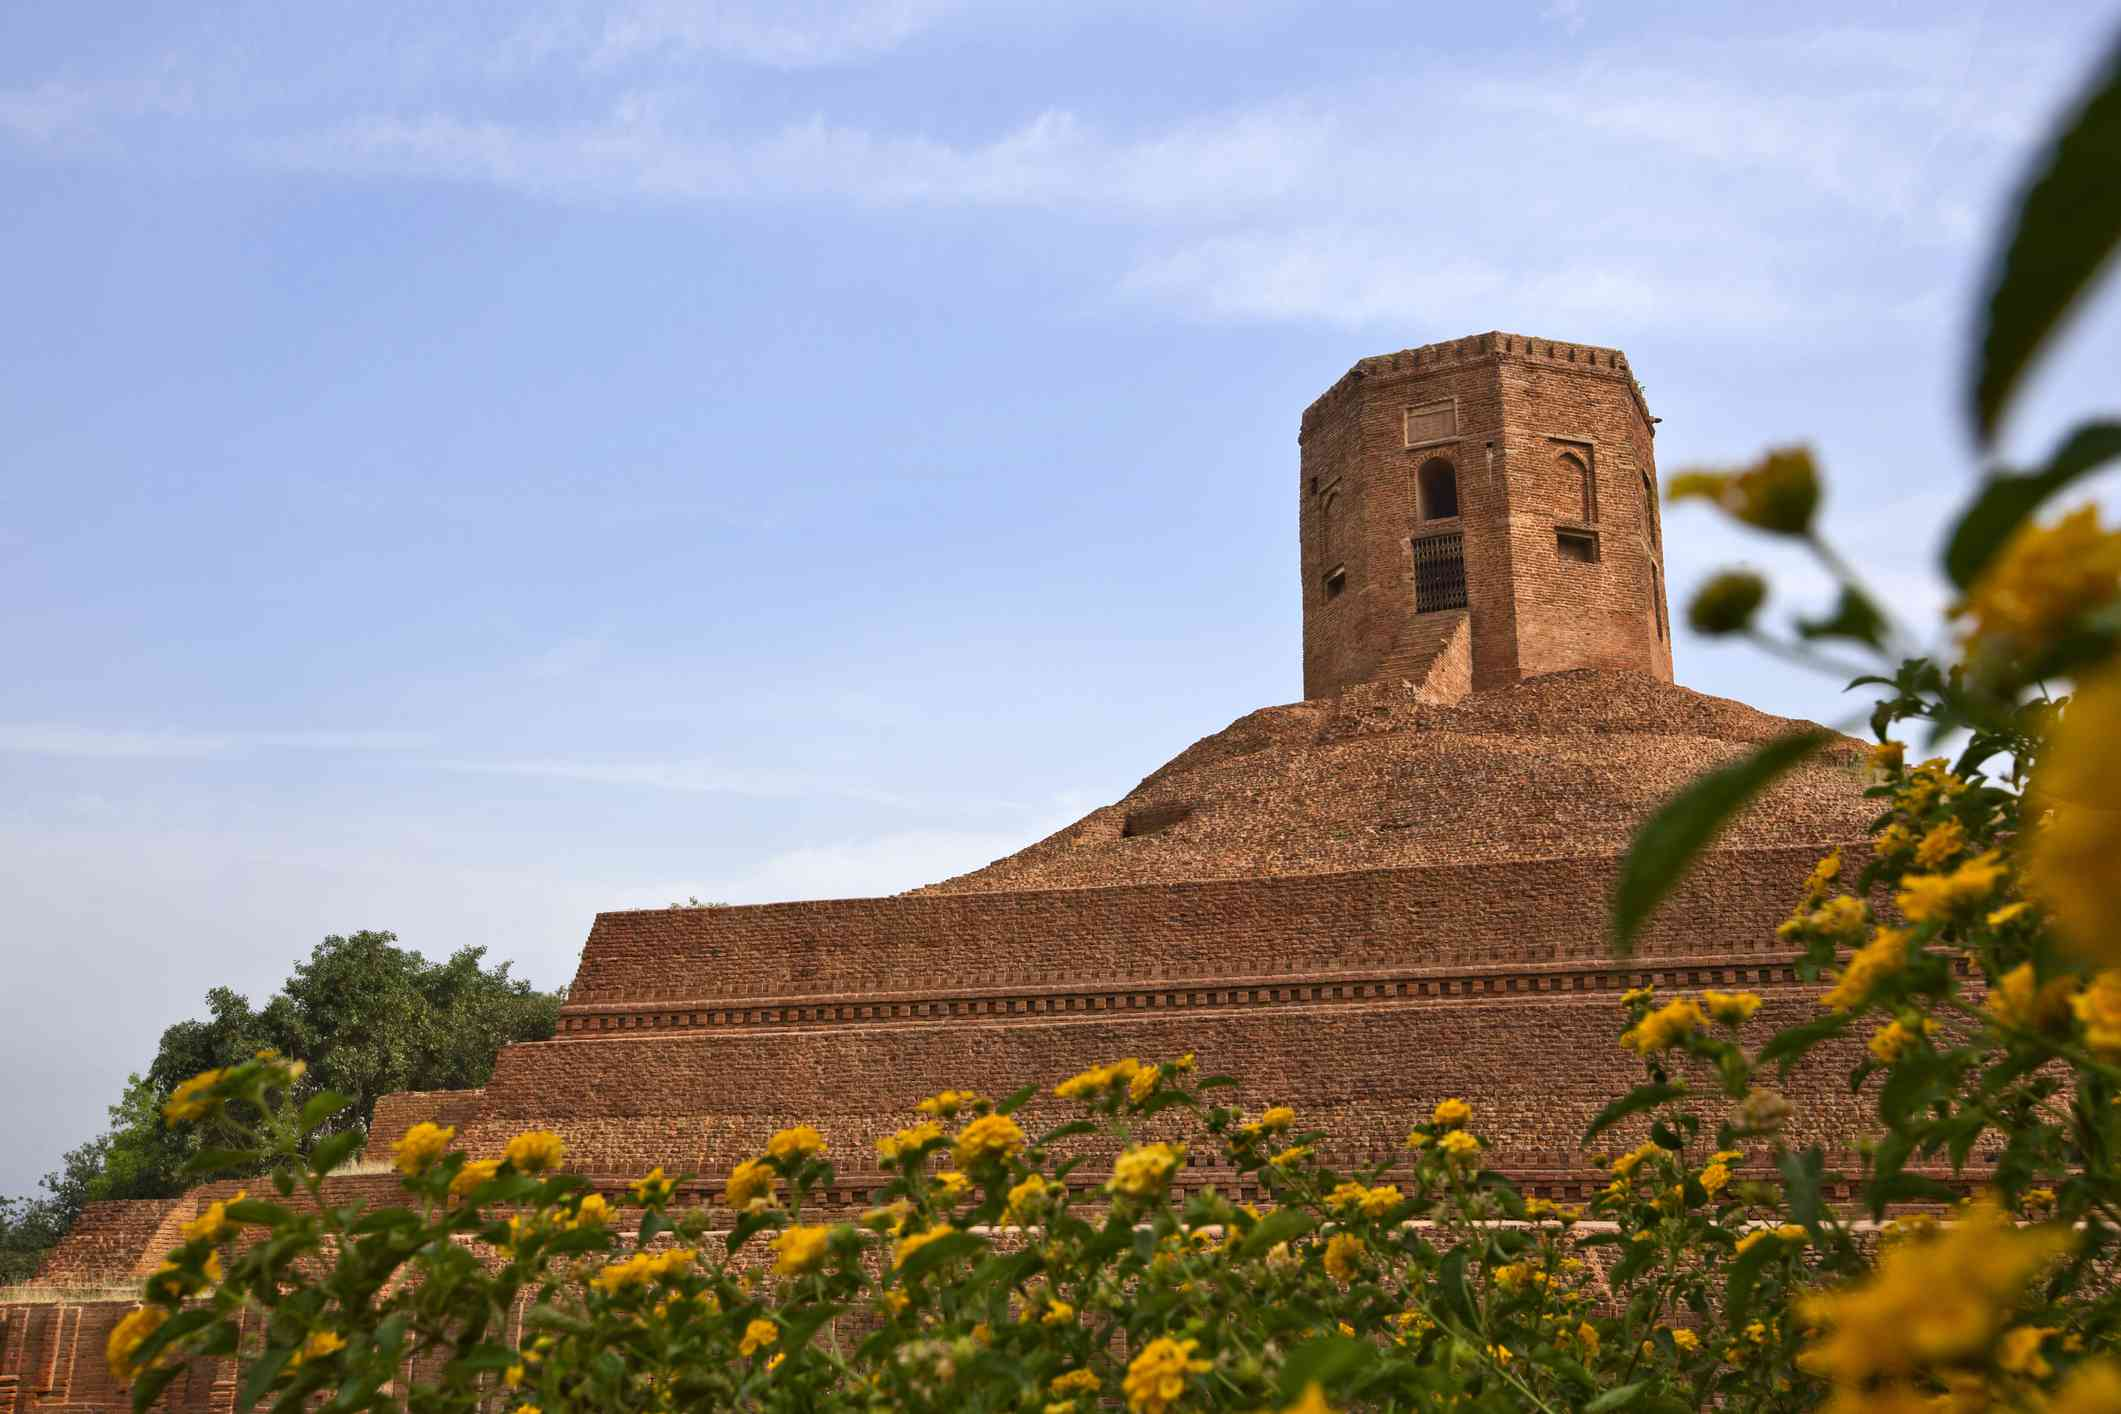 All Inclusive 3-hour tour of Sarnath from Varanasi with Hotel Pick-up and drop-off